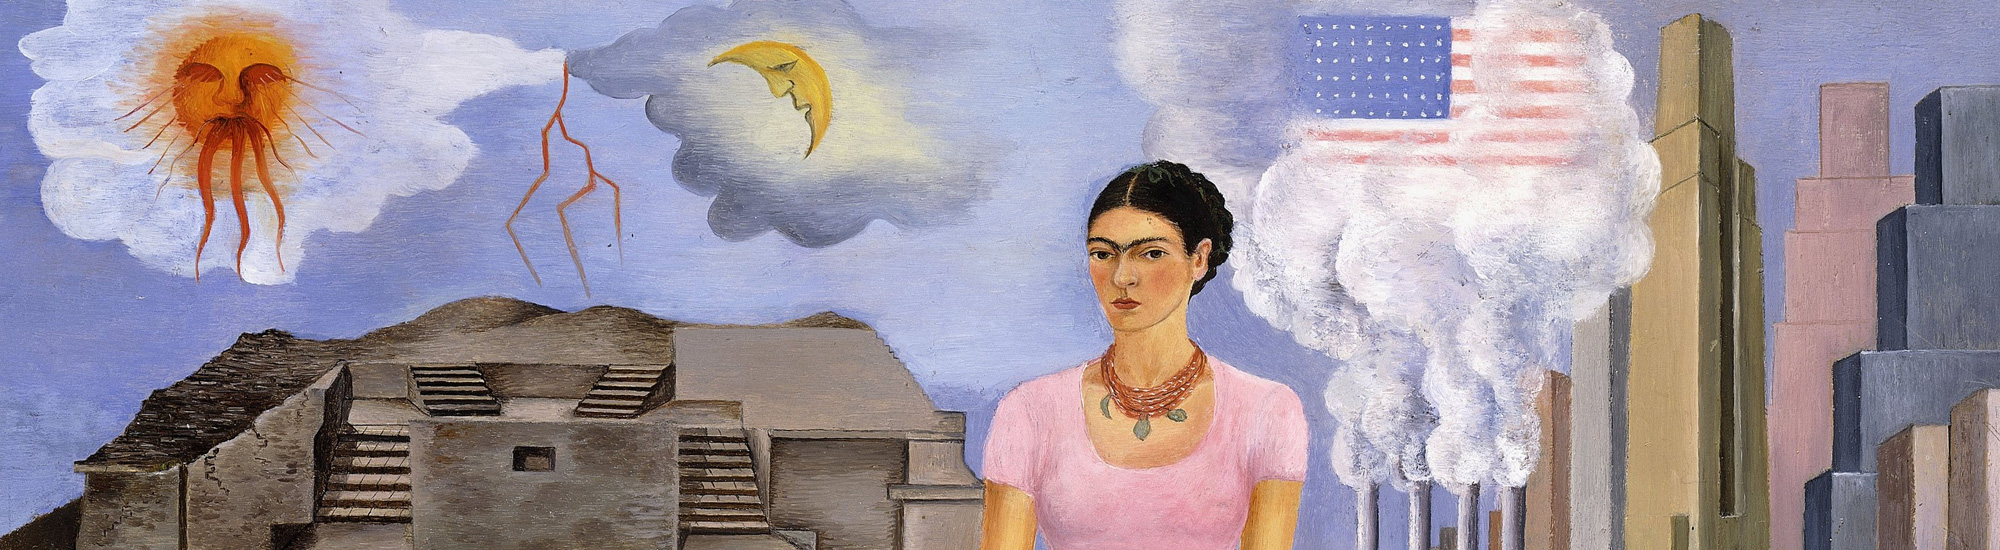 Frida Kahlo,  Self Portrait on the Border between Mexico and the United States of America , 1932, oil painting on tin, private collection (detail)